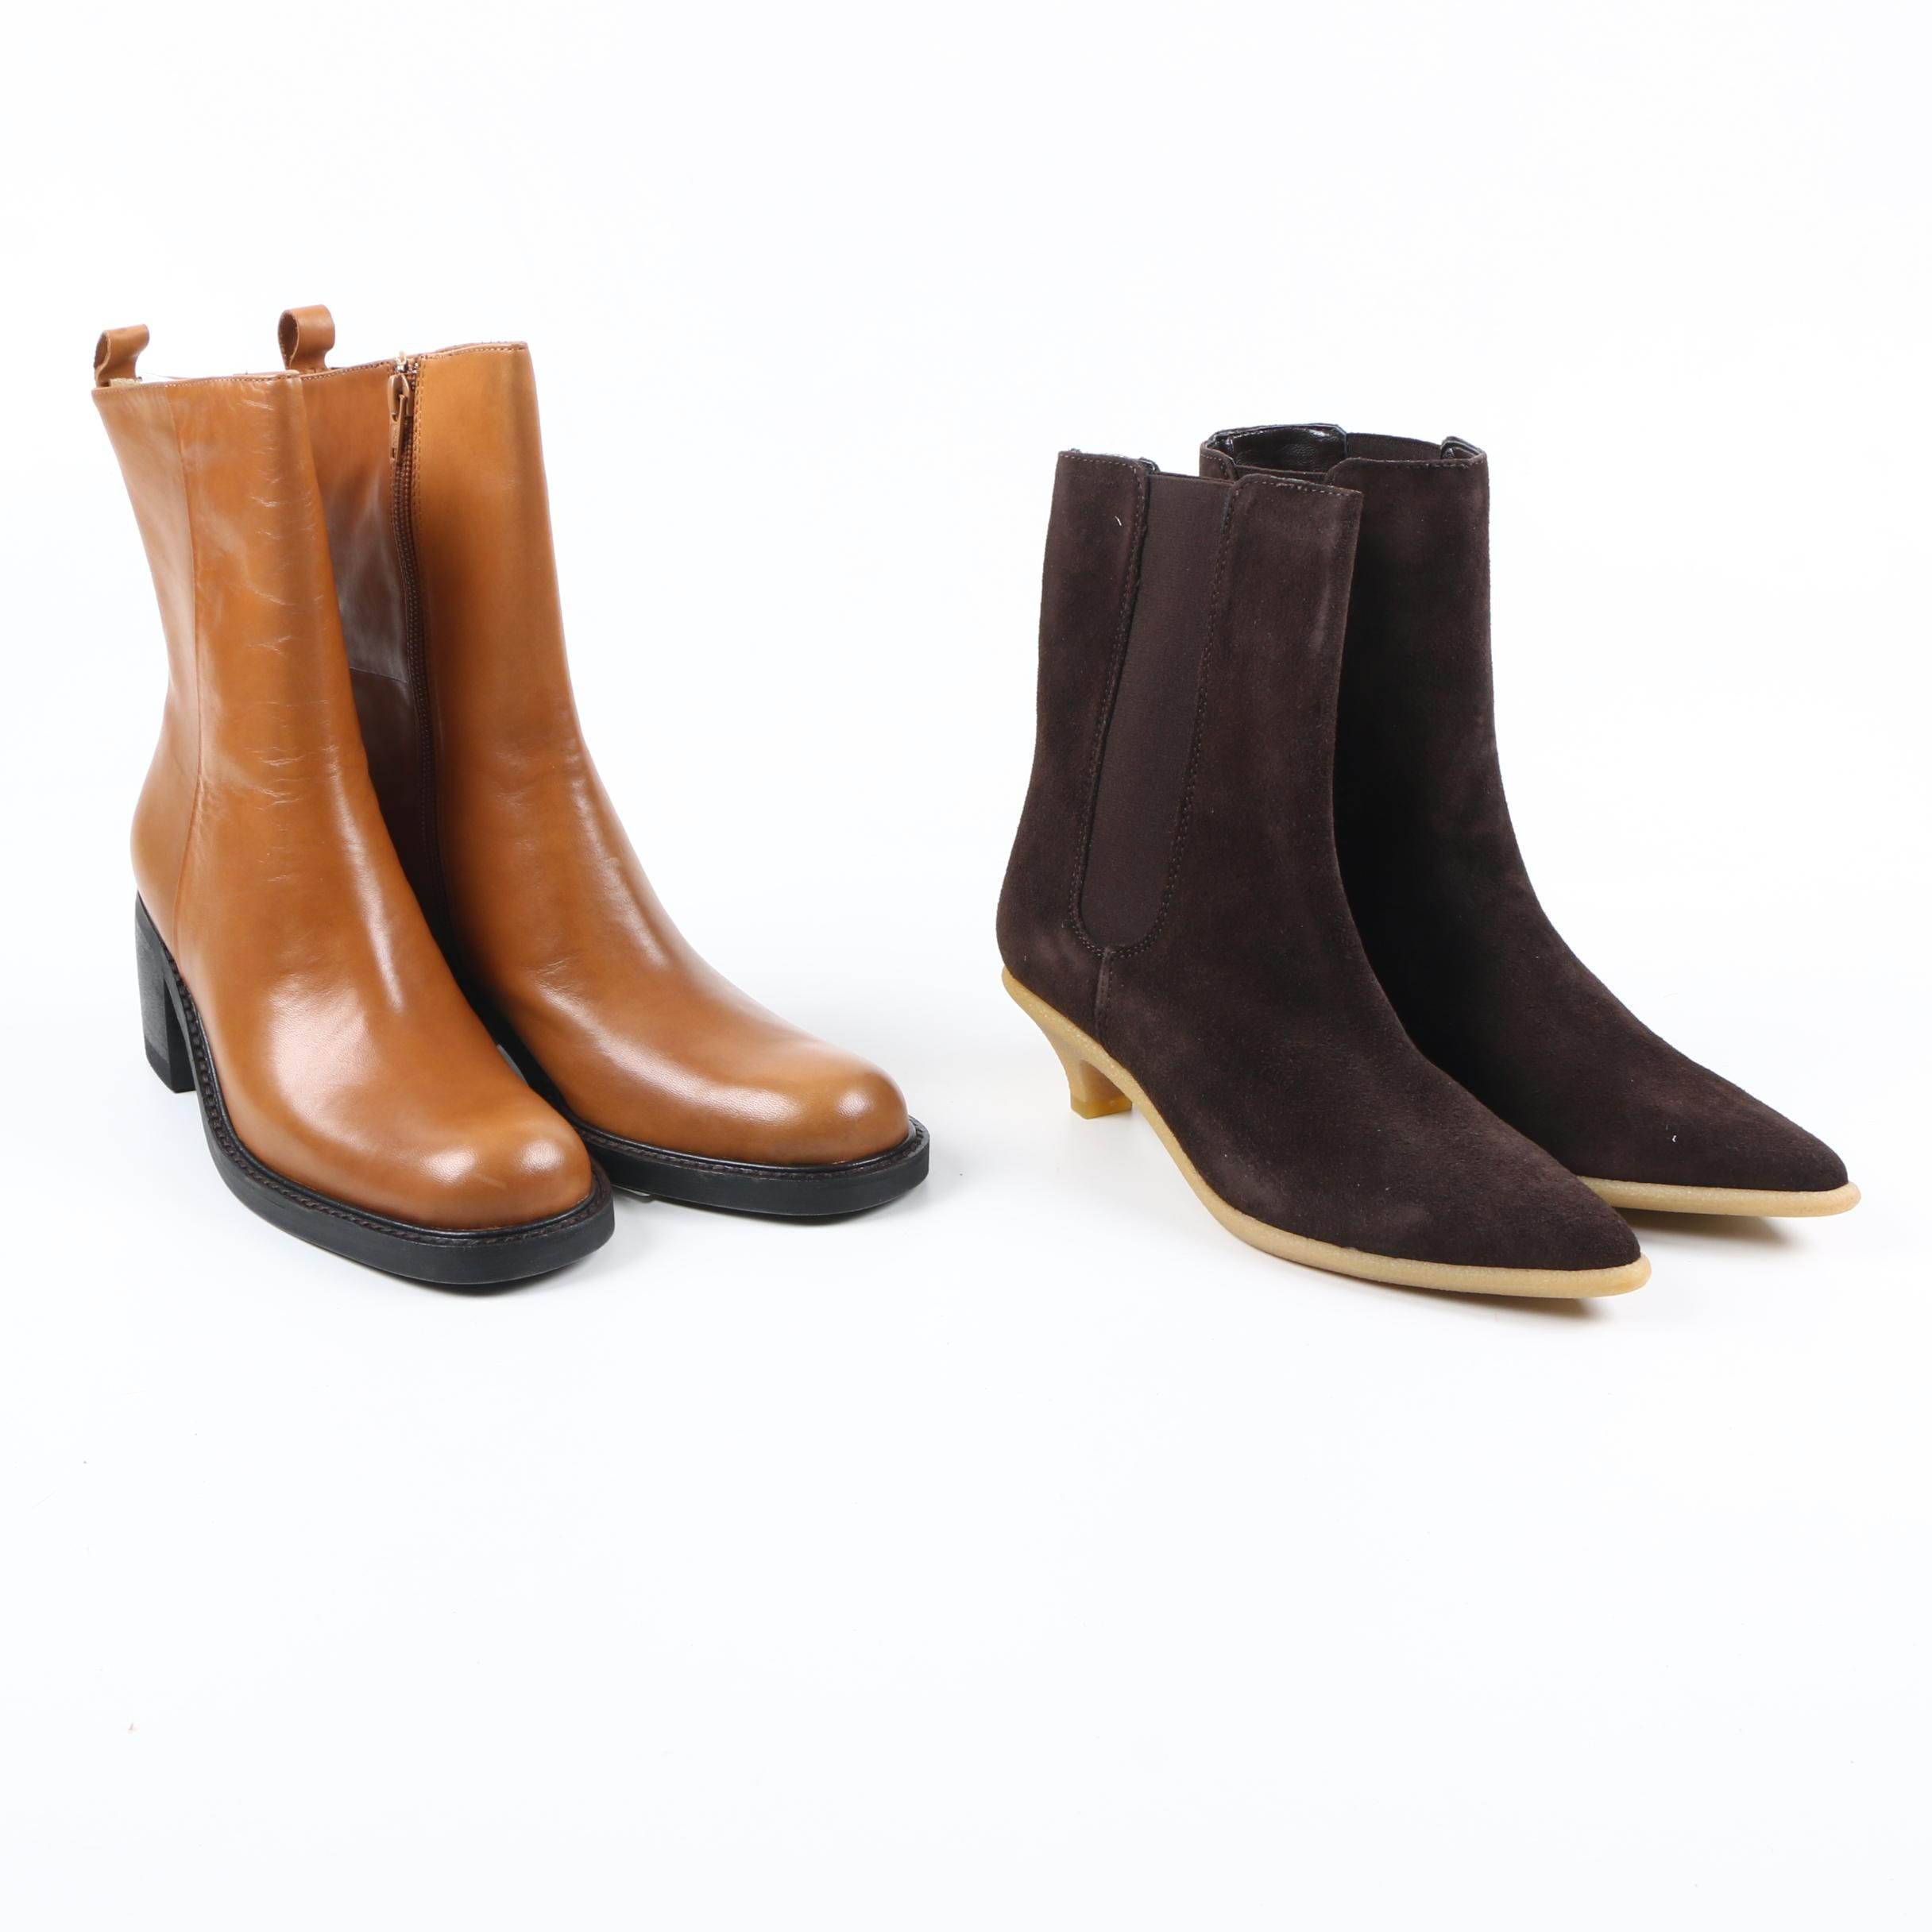 Women's High Heeled Boots Featuring Michael Kors and Kenneth Cole